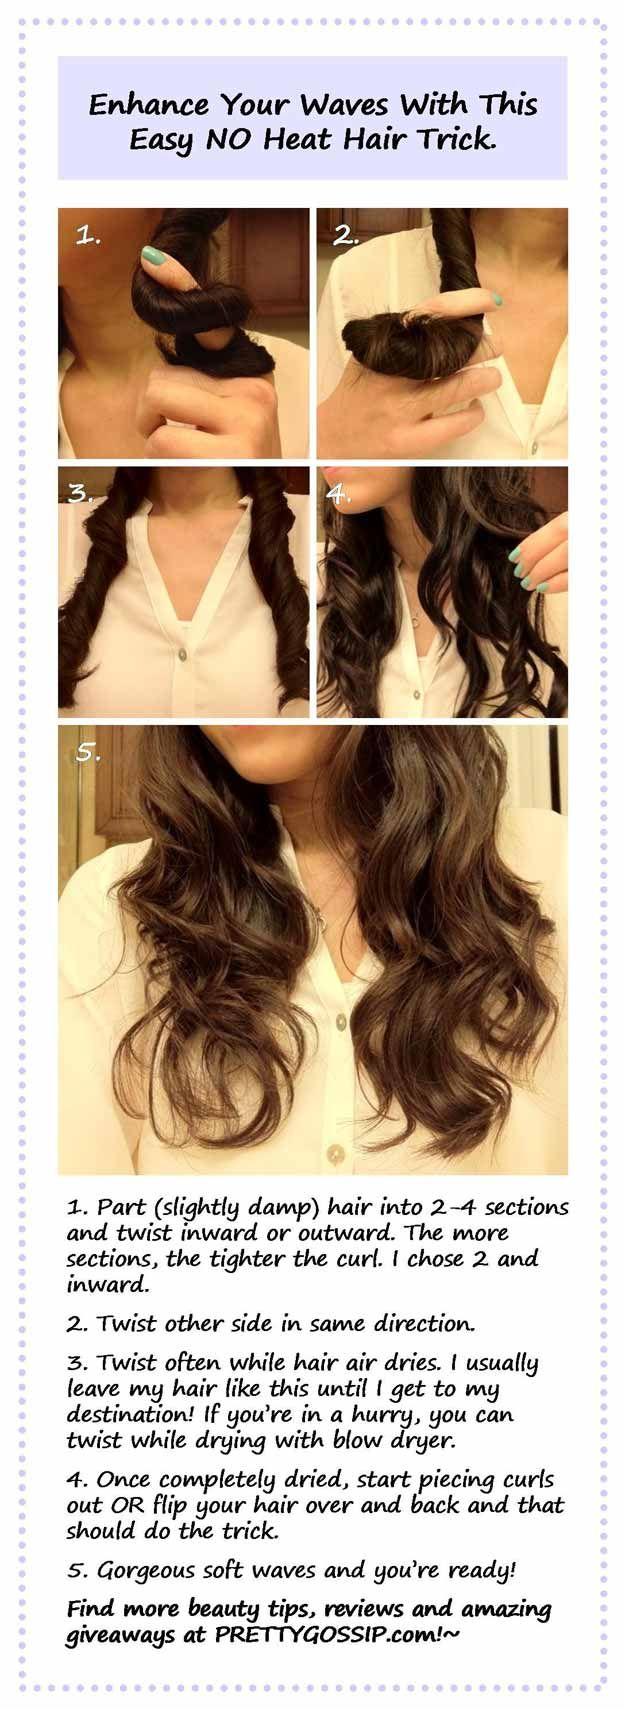 Long Wavy Hairstyles - Gorgeous Soft Waves with no Heat - Beautiful Long Layered...